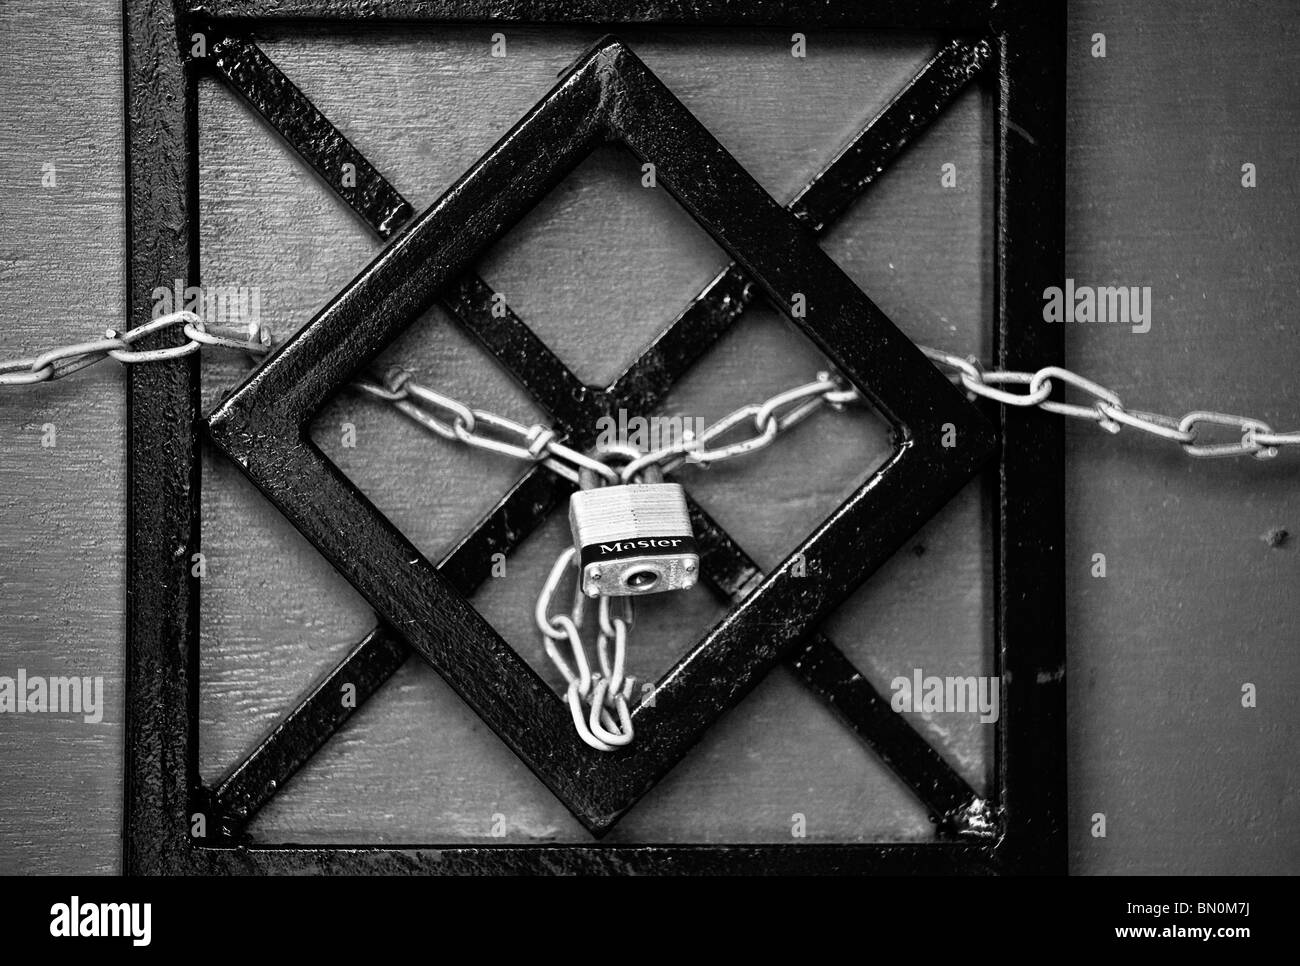 Ybor City, Tampa, FL - July 2009 - Padlocked chain woven through wrought iron gate in Ybor City area of Tampa, Florida - Stock Image